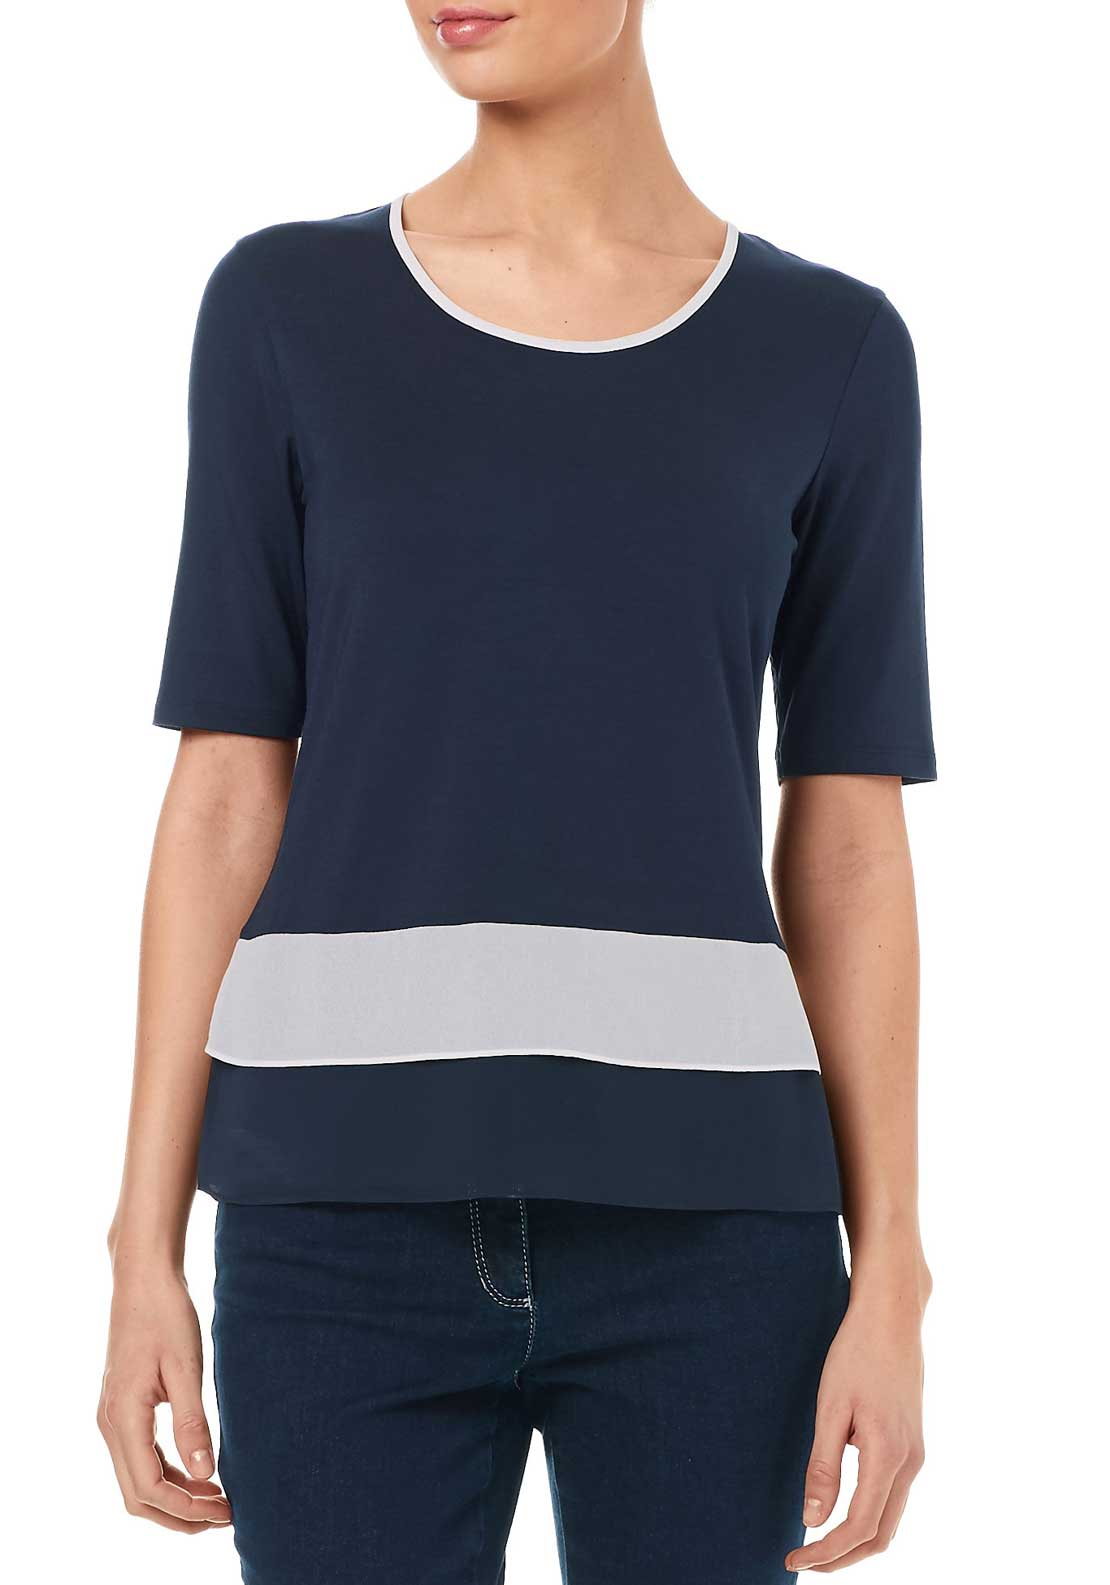 Gerry Weber Top With Frilled Hem, Navy